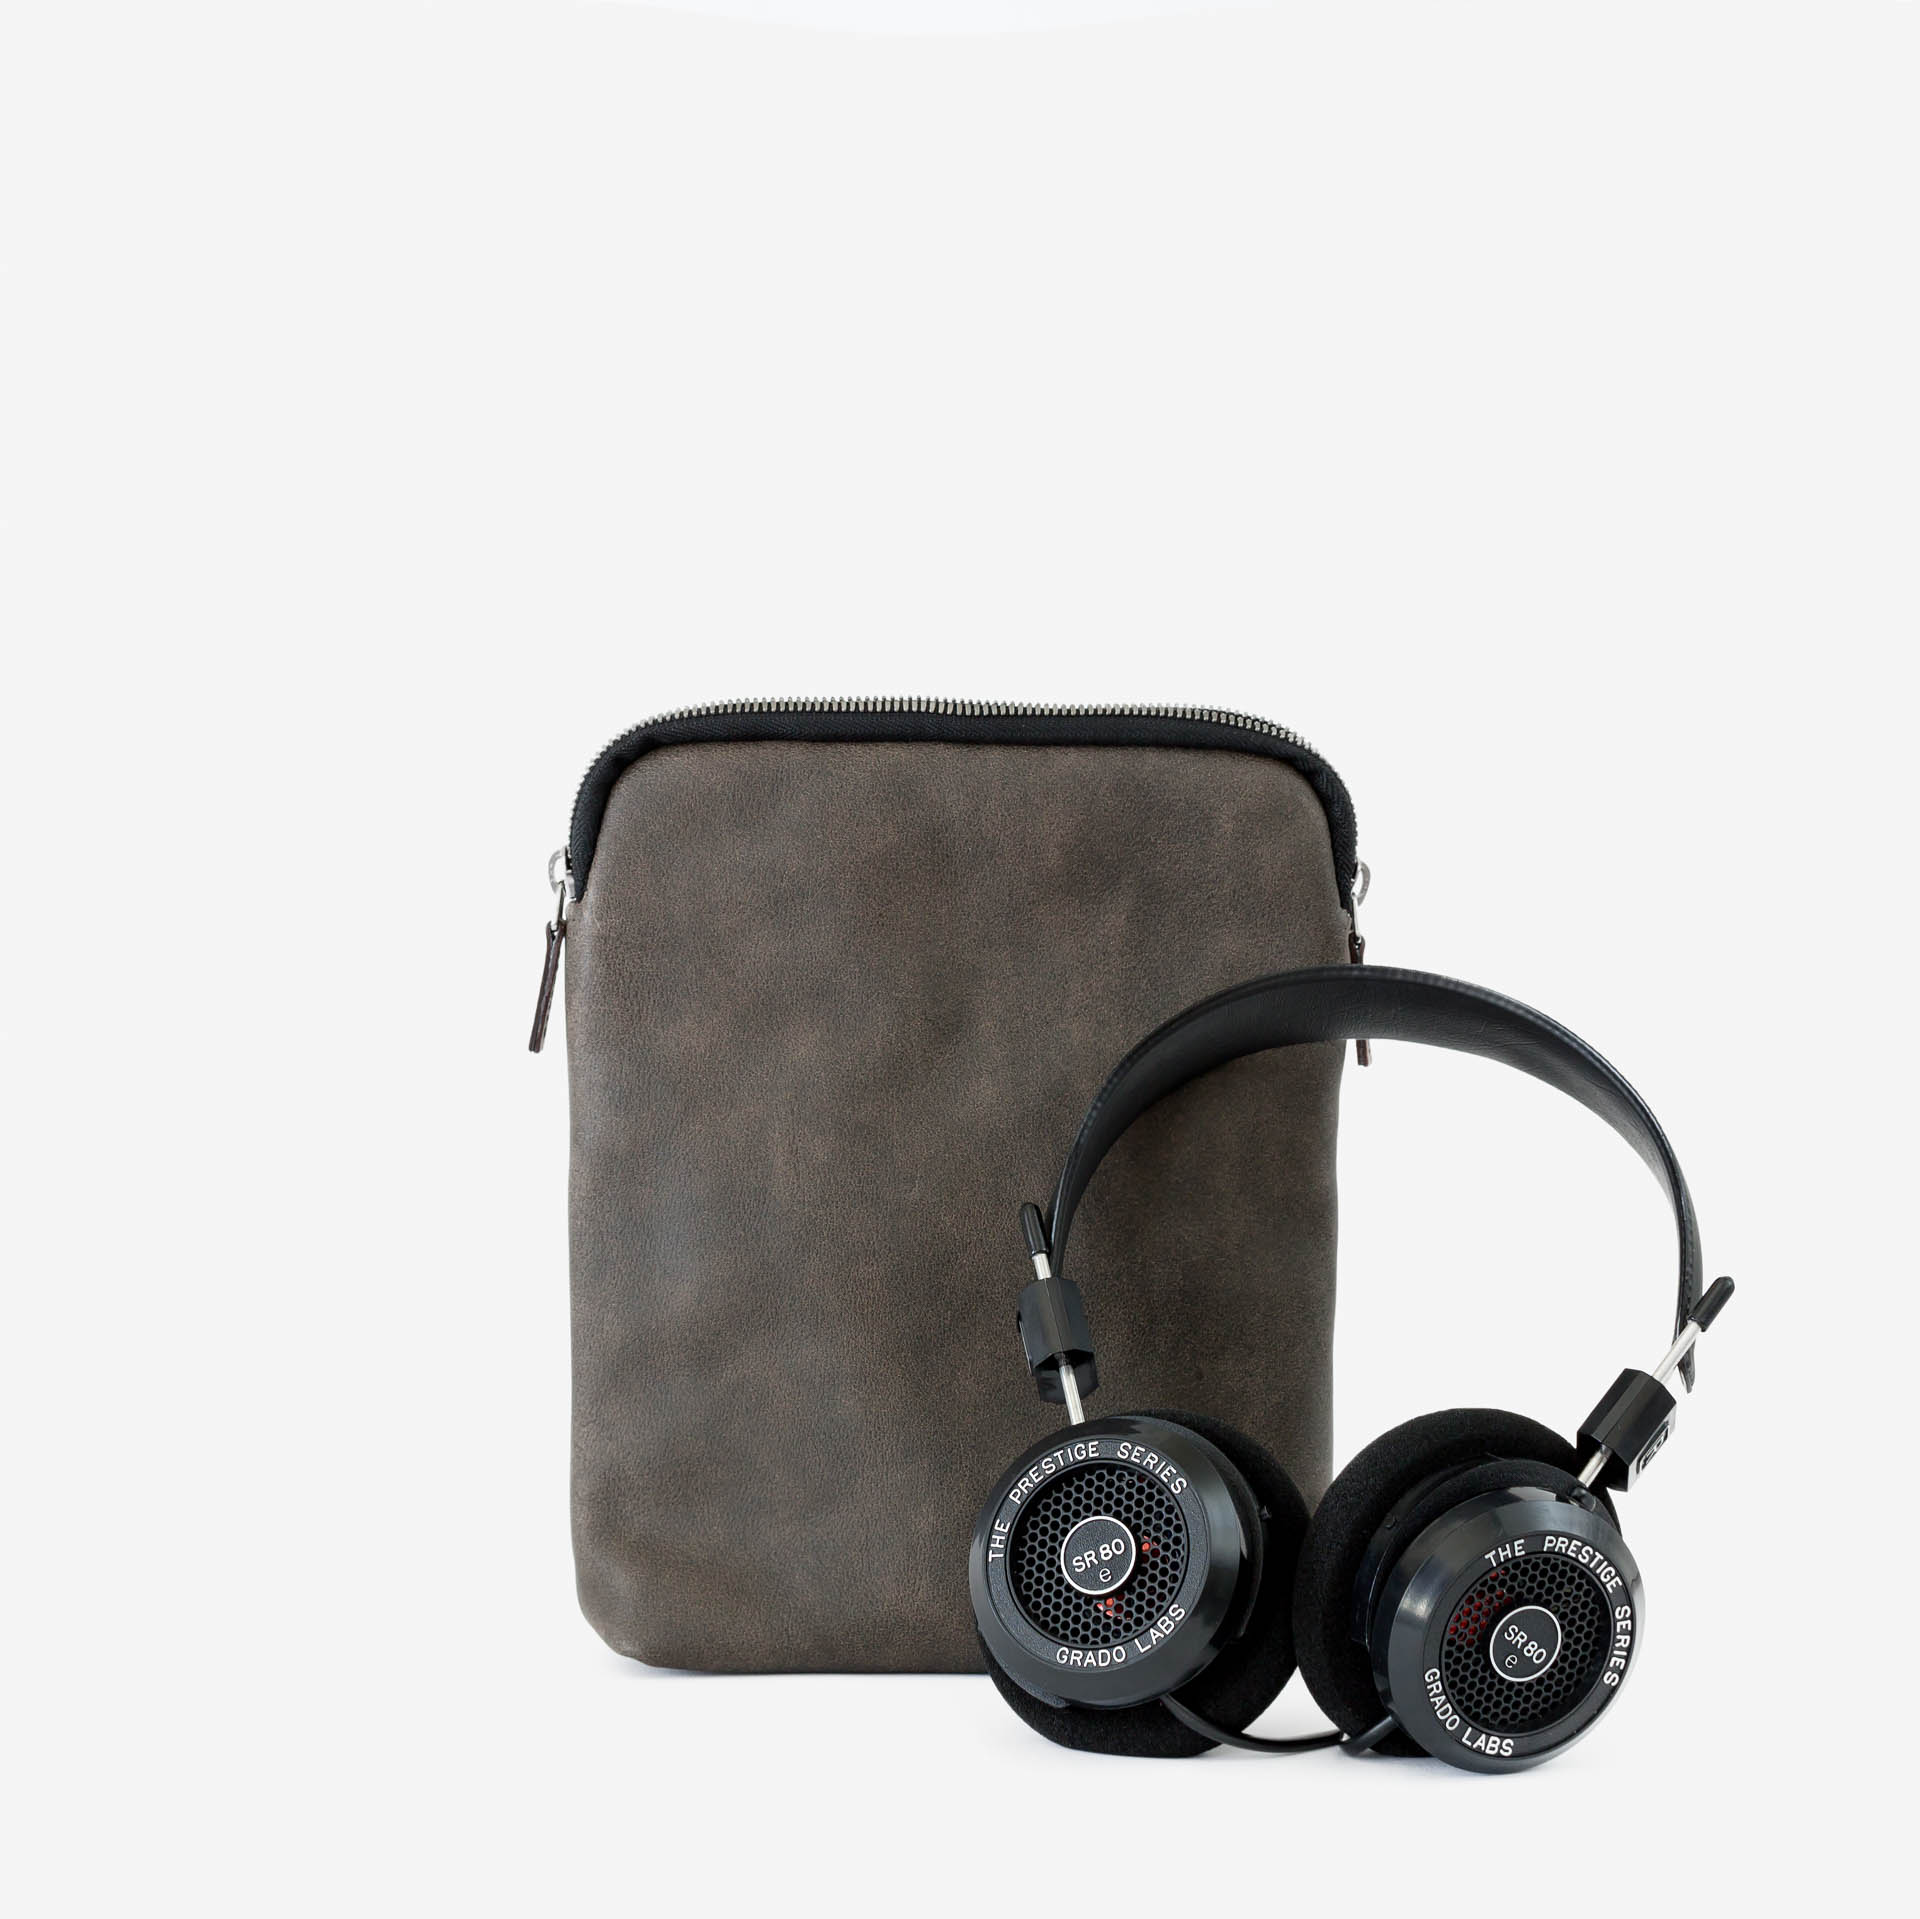 Grado SR80e with This is Ground Leather Pouch